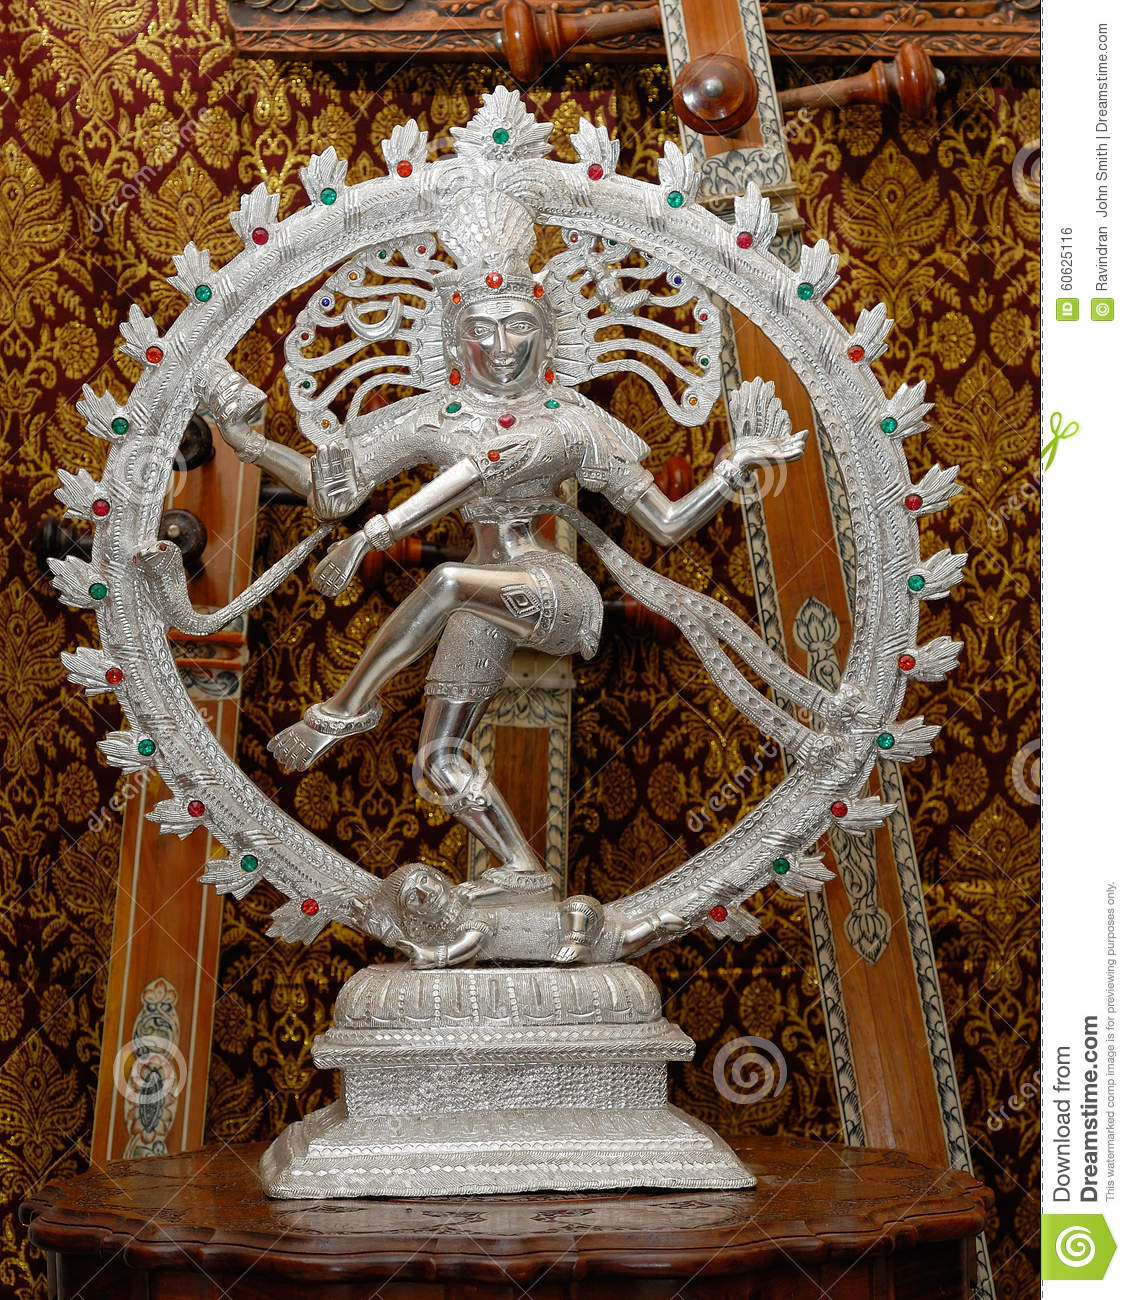 Simple Wallpaper Lord Nataraja - nataraja-lord-king-dance-depiction-hindu-god-shiva-as-cosmic-dancer-who-performs-his-divine-dance-to-60625116  Snapshot_571110.jpg